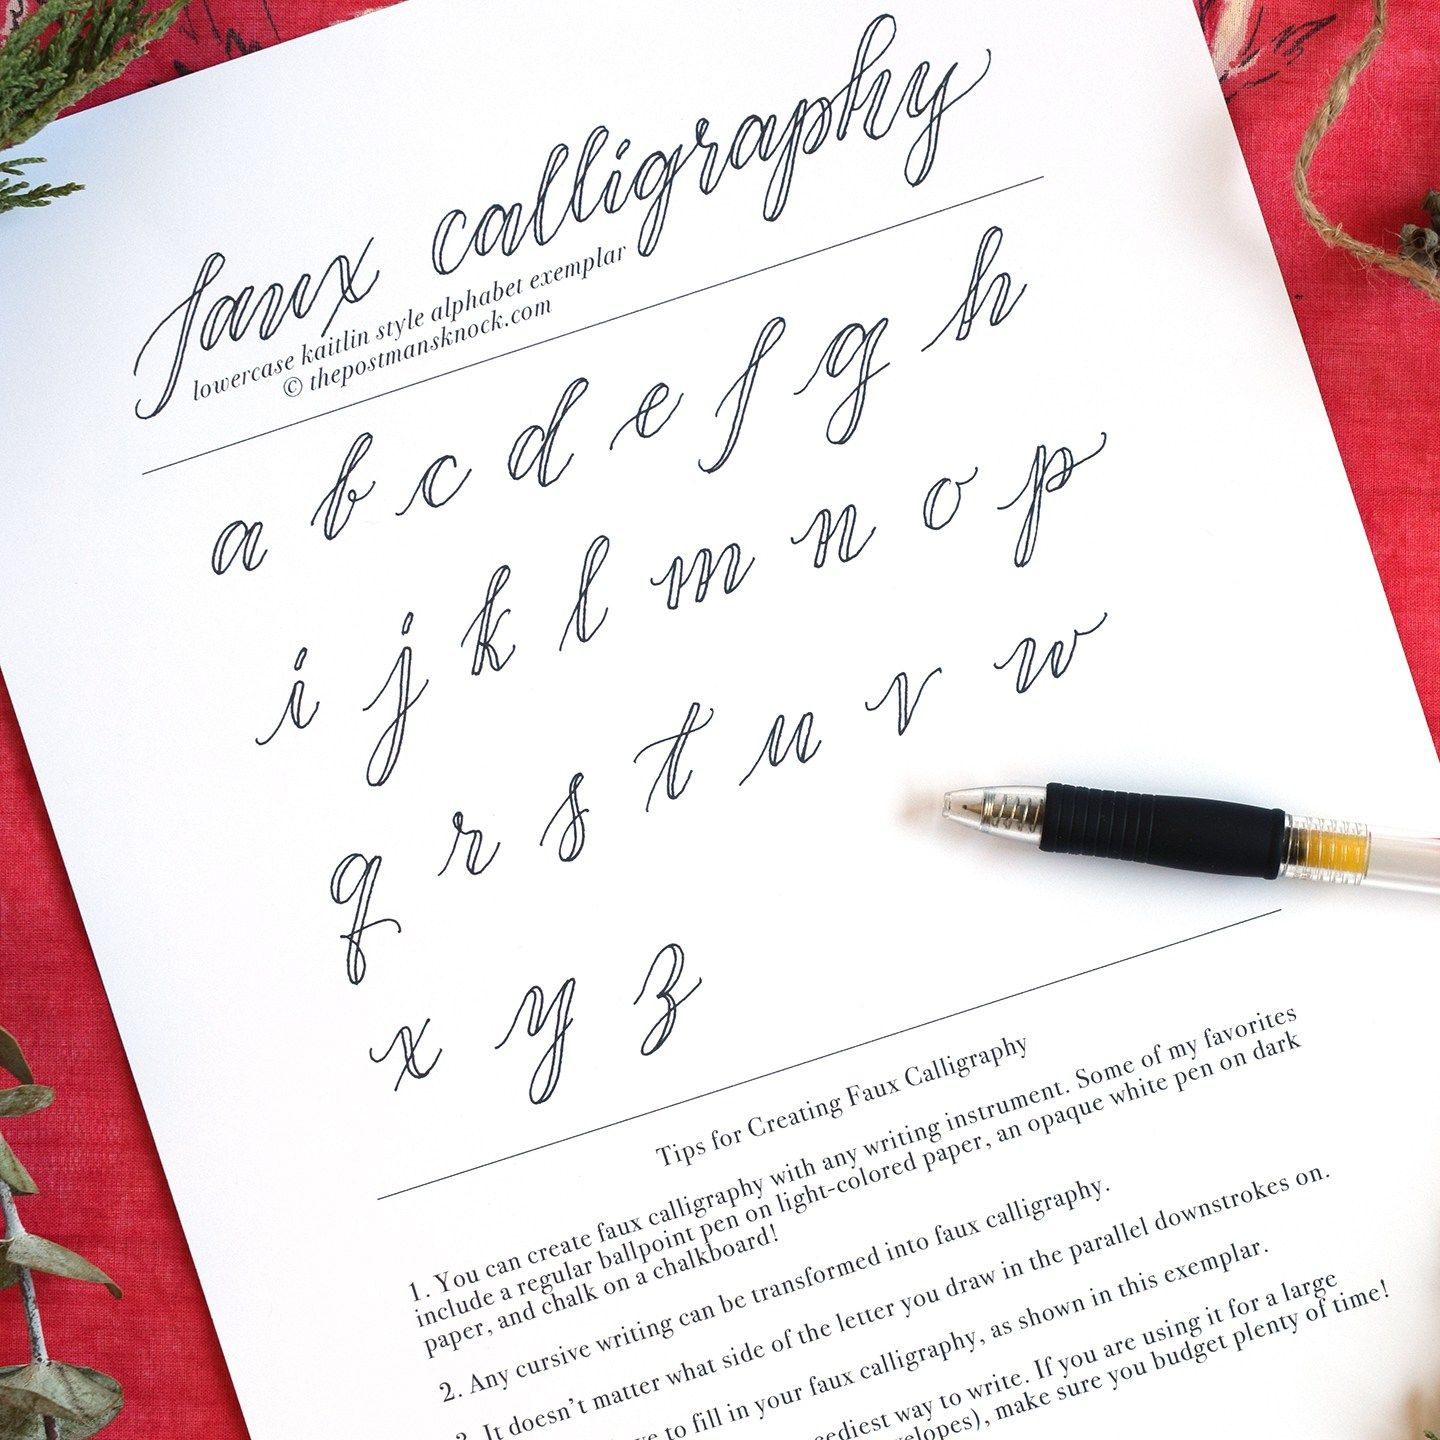 Pin by Sabina Wong on CALLIGRAPHY | Pinterest | Calligraphy ...